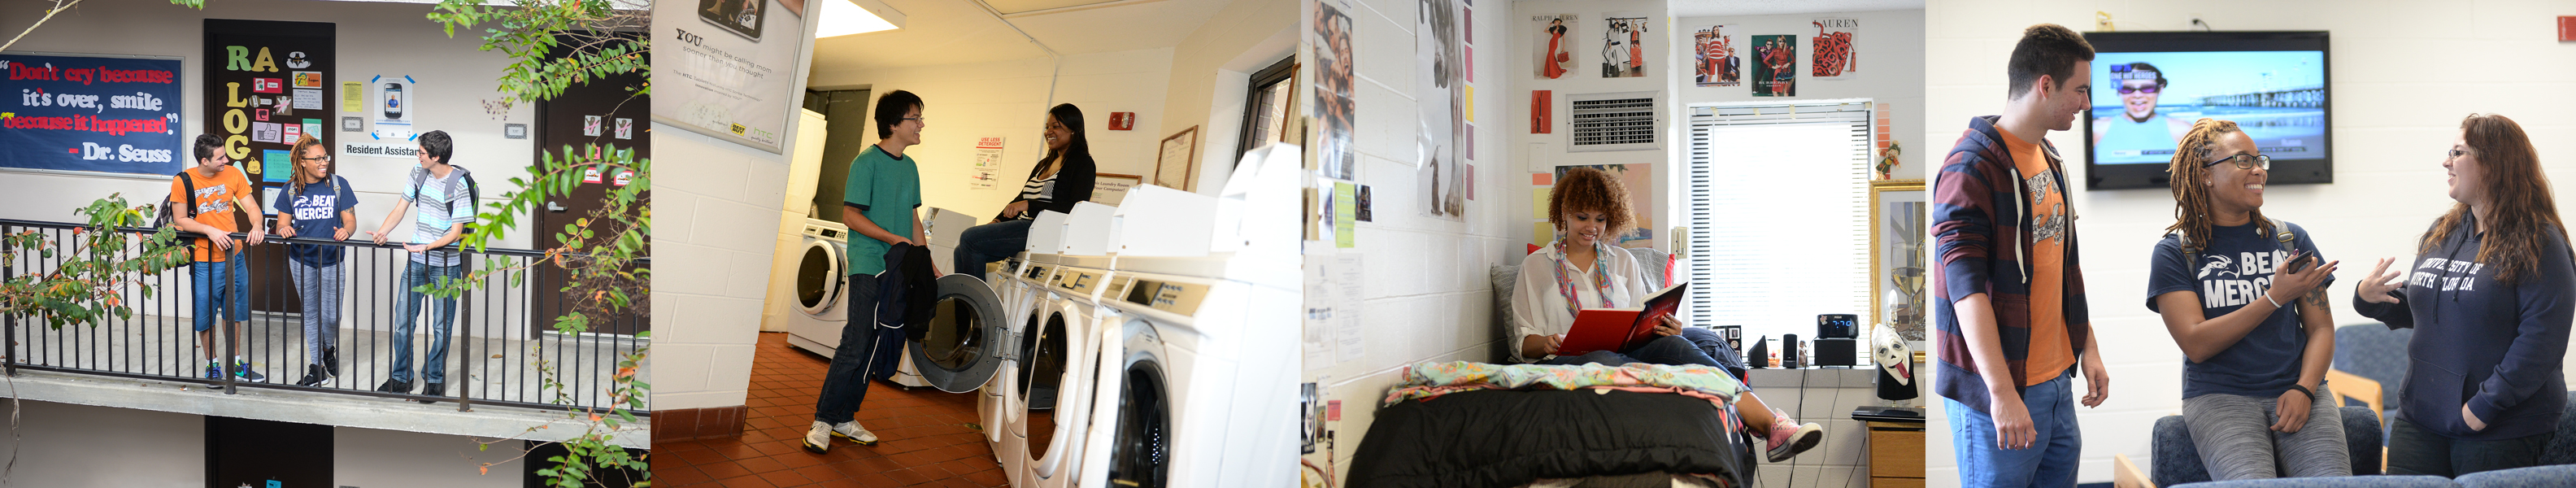 four scenes-balcony, laundry room, dorm room, break room